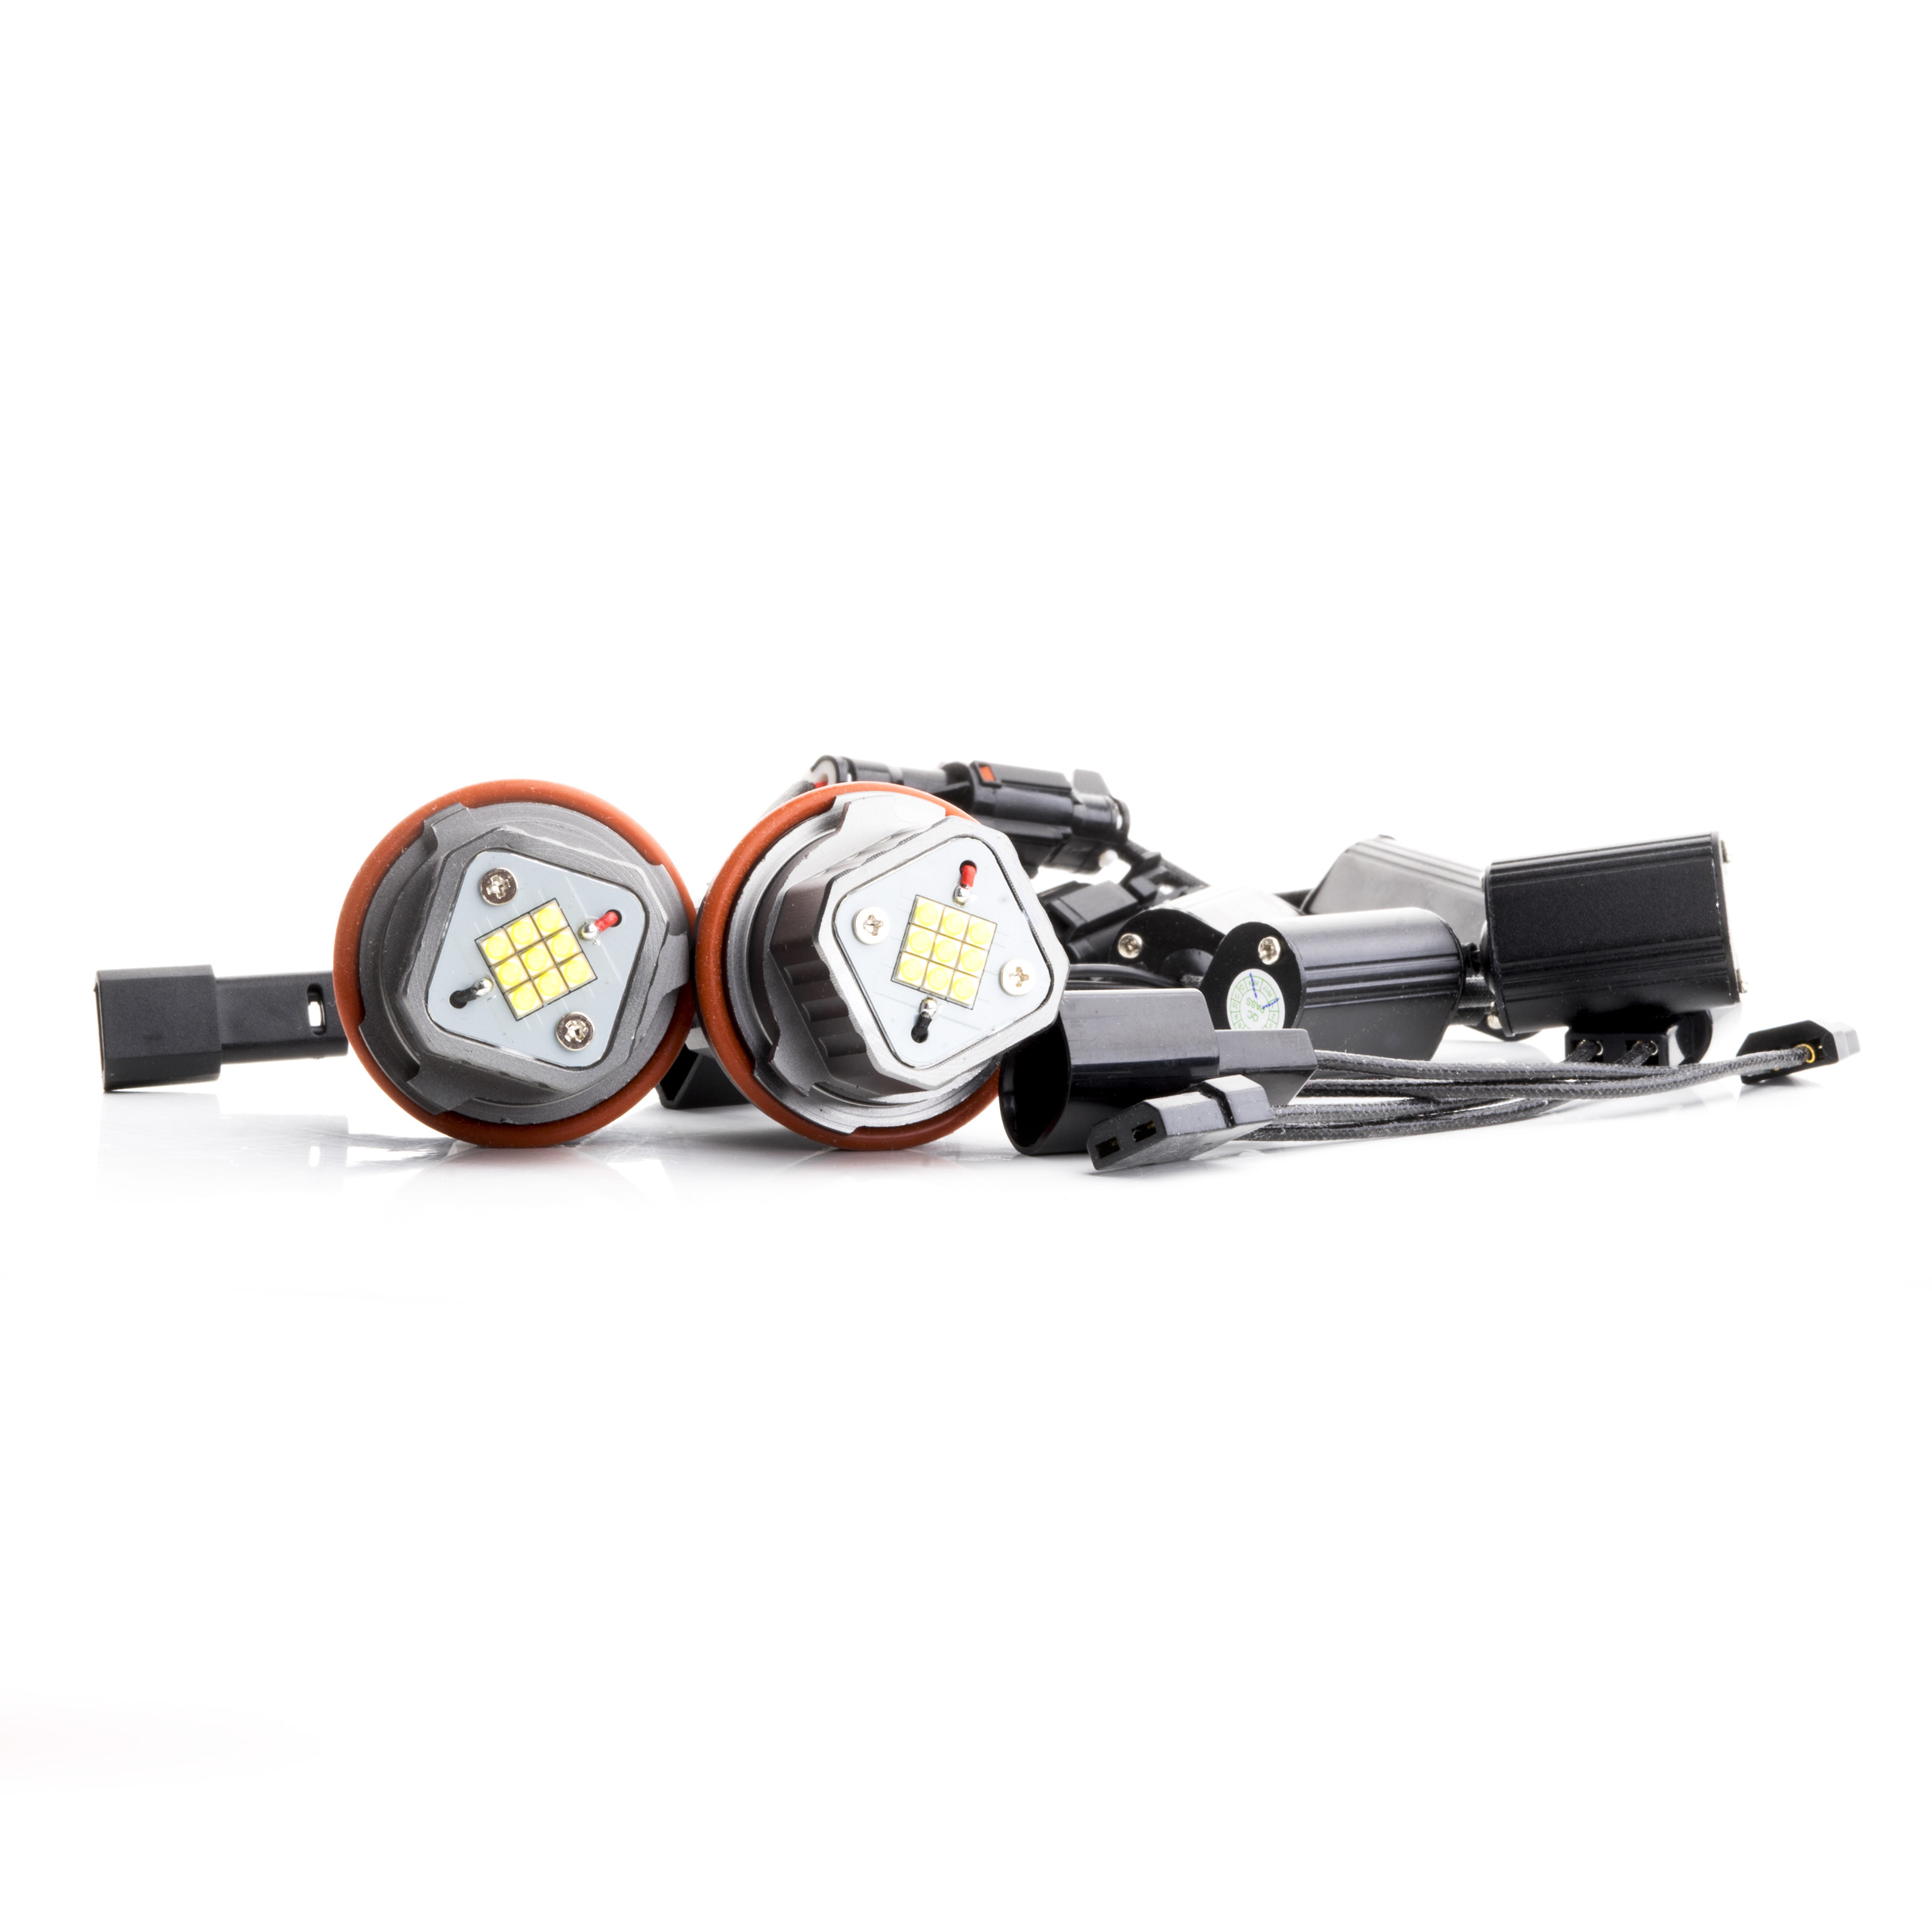 LED Markery 2 x 80W (OSRAM) do kroužků BMW X3 E83 FL (2006-2010)